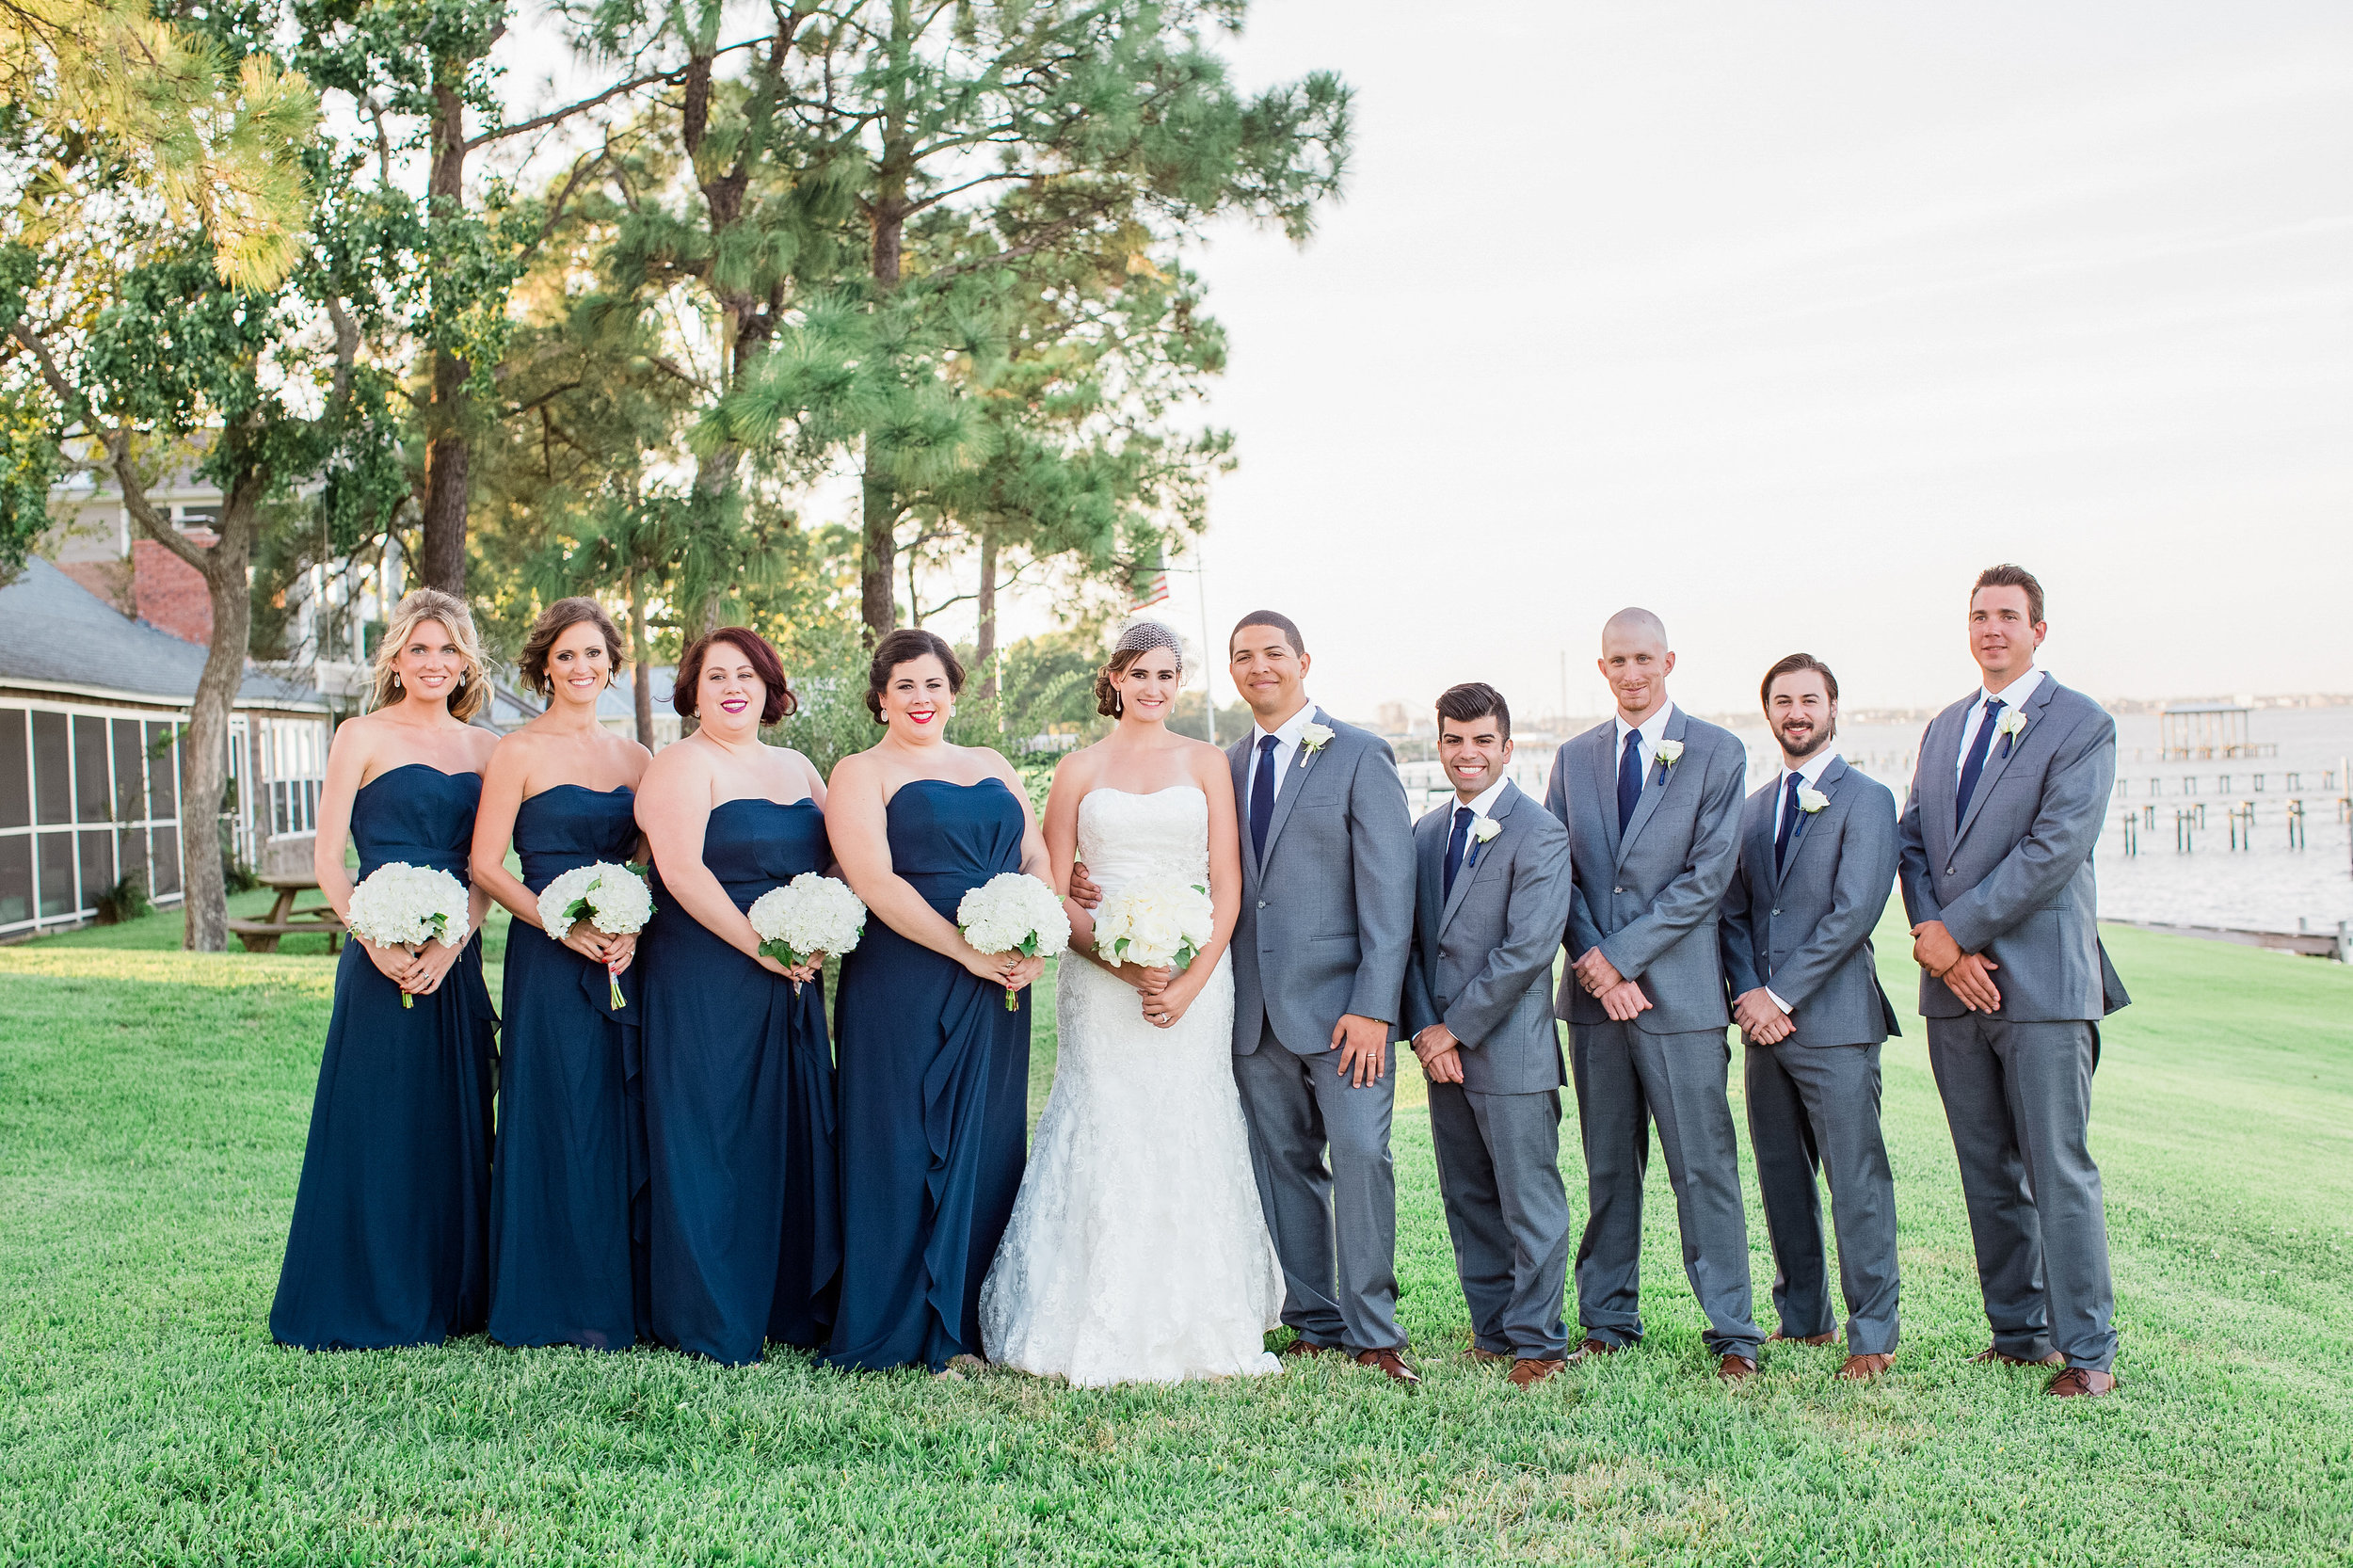 Plan Our Day Houston | Wedding Coordinators | Kemah, TX Wedding at Texas Corinithian Yacht Club | Bridal Party Pics